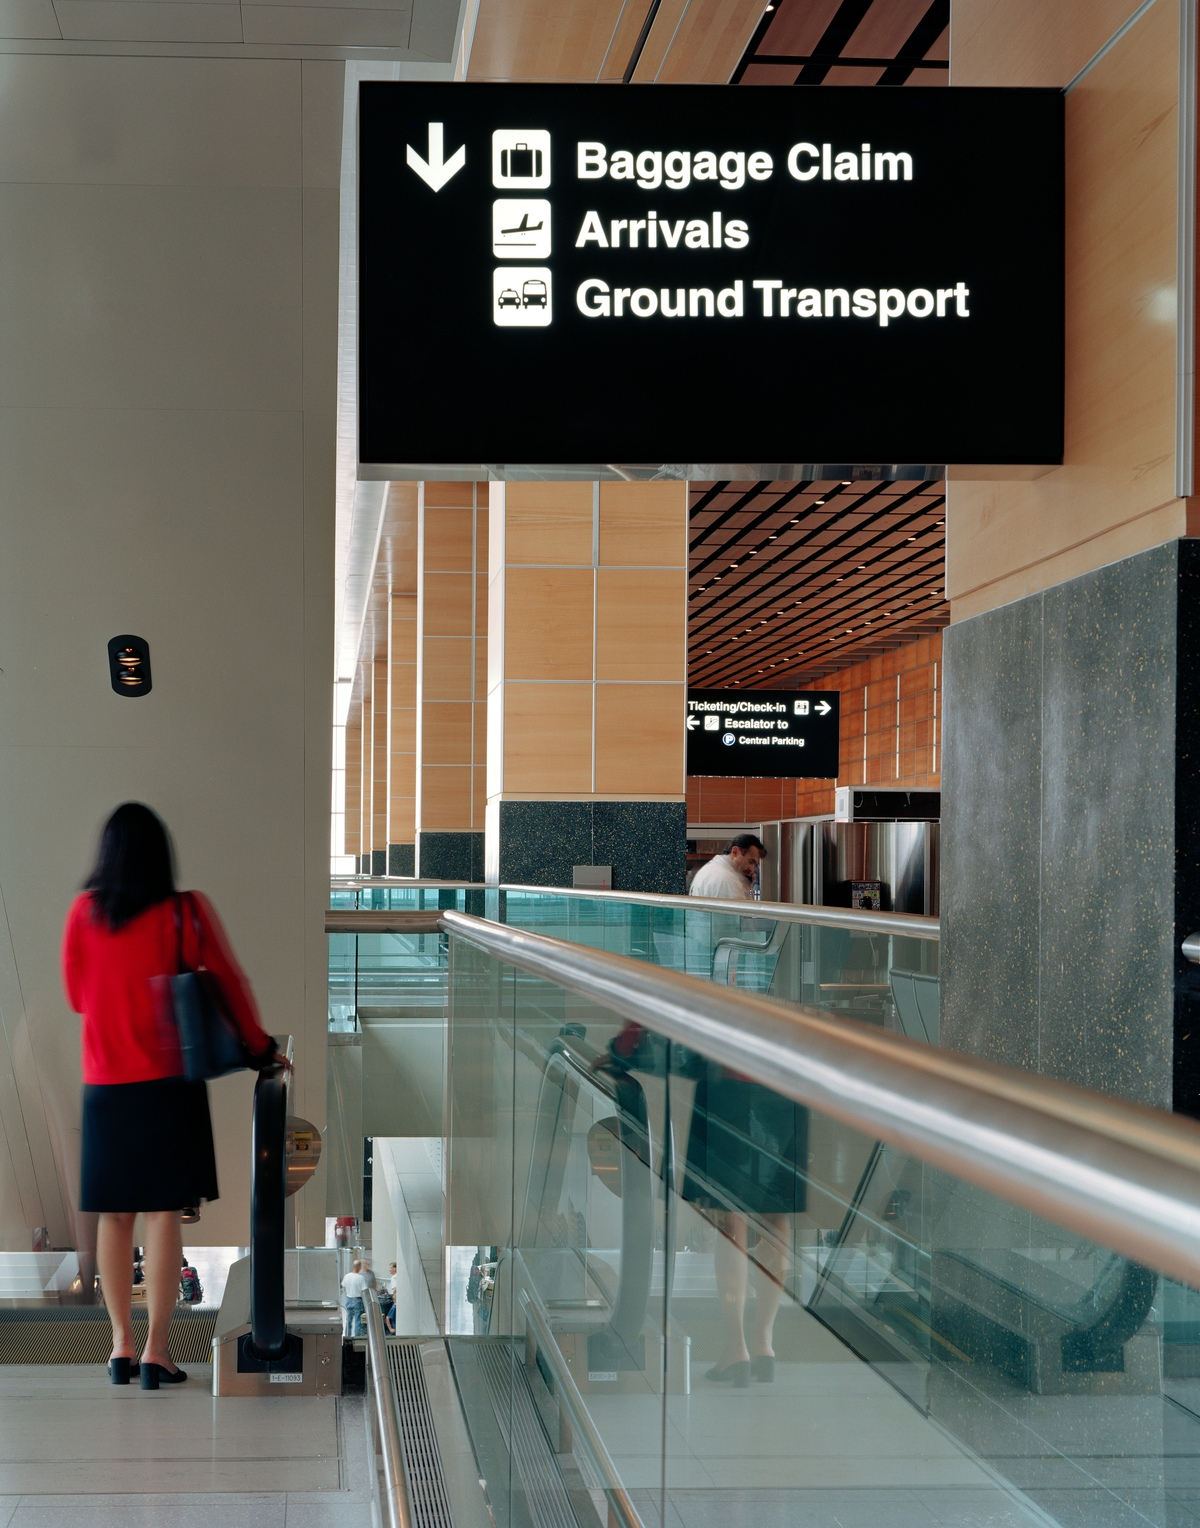 Project image 2 for Terminal E Signage, Logan International Airport